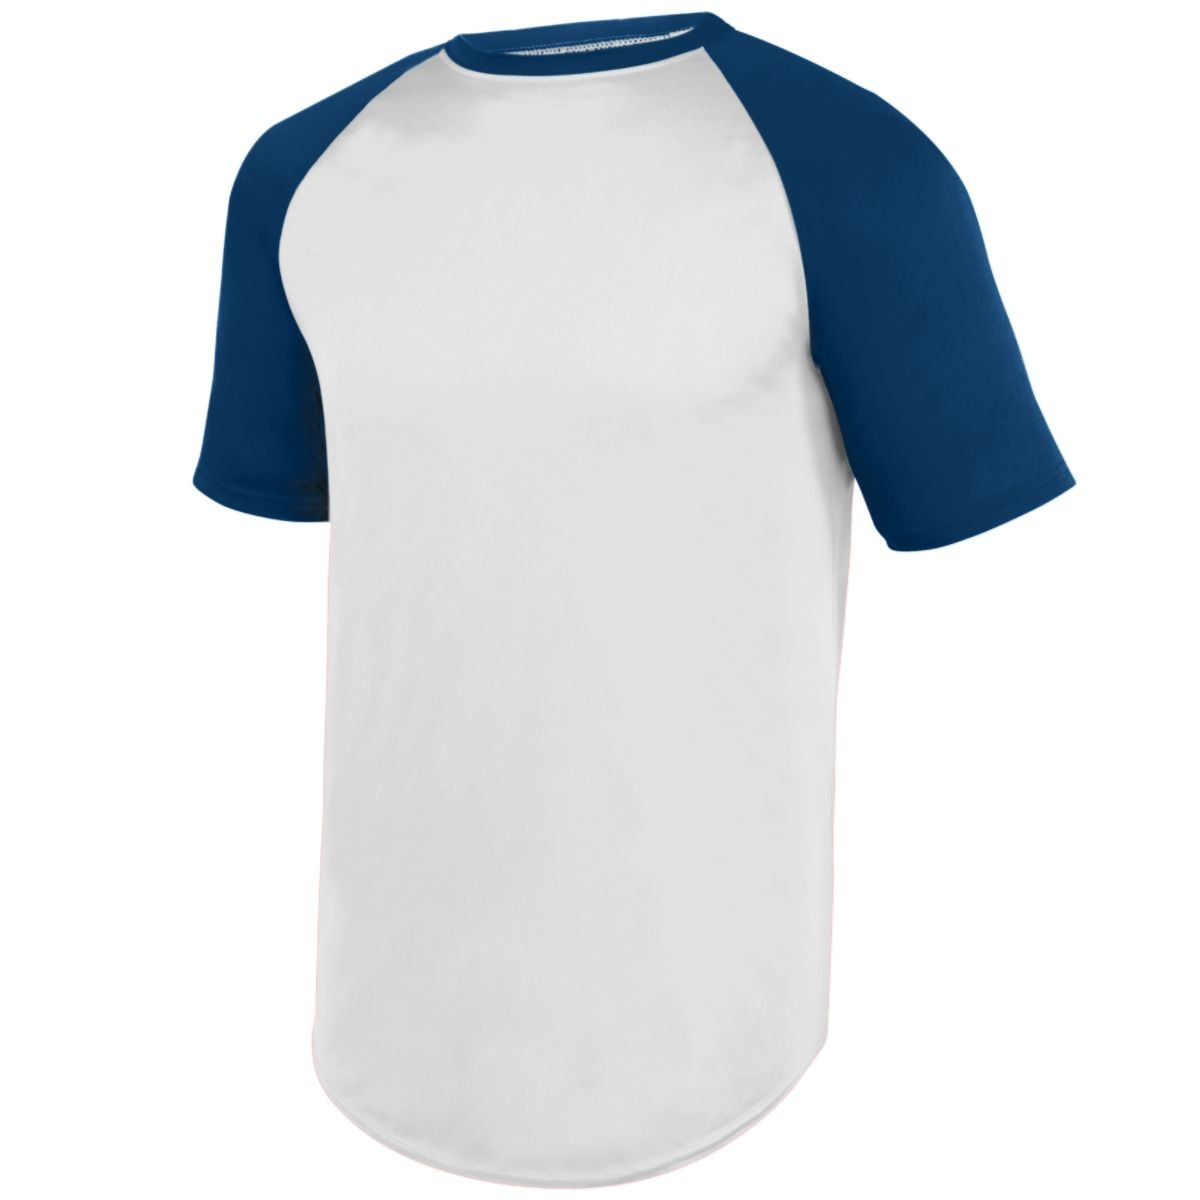 Augusta Sportswear Boys Wicking Short Sleeve Baseball Jersey 1509